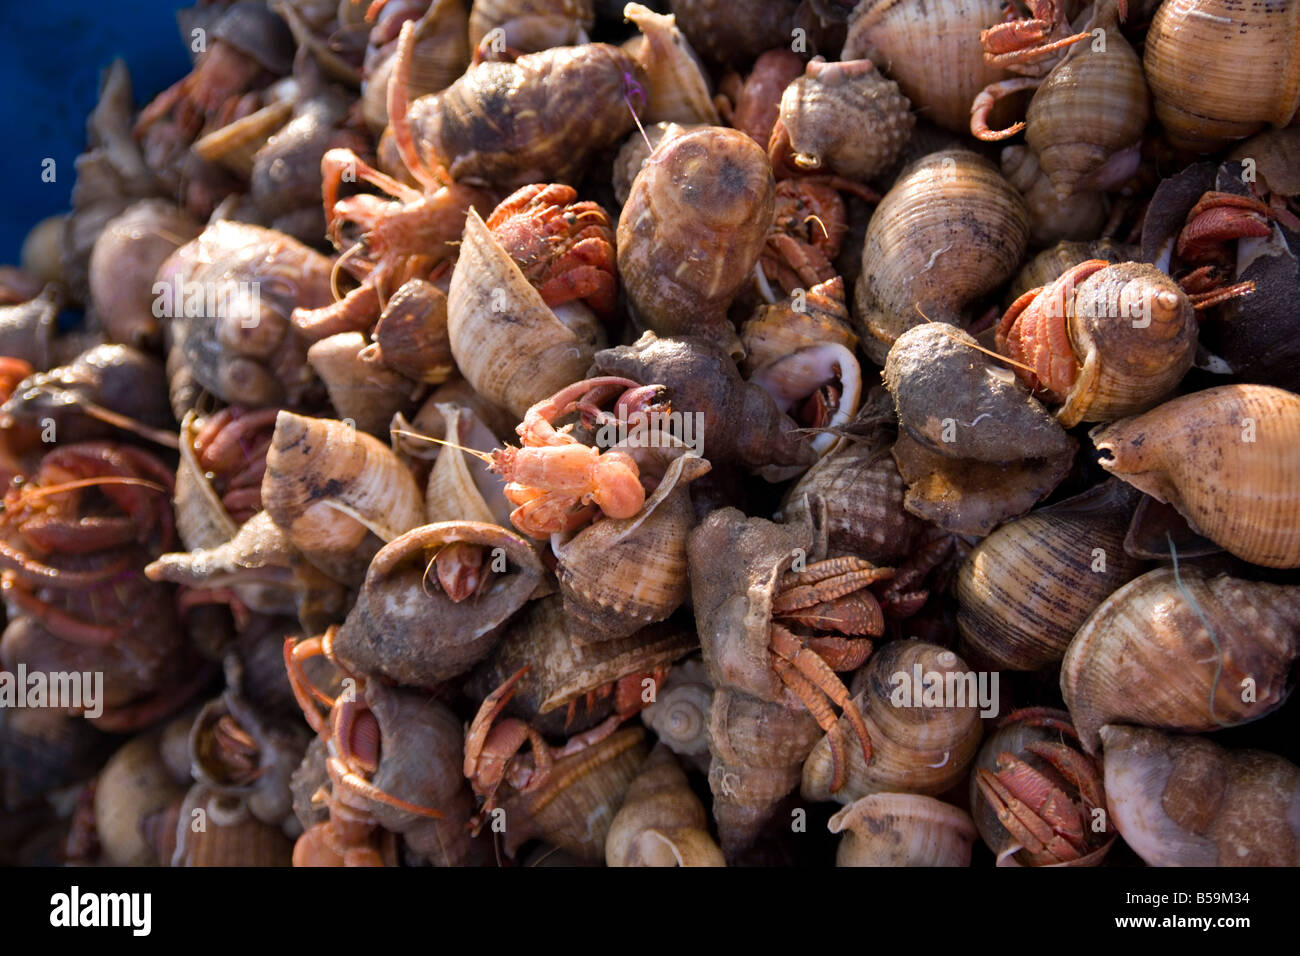 hermit crabs in the fish market in Palamos on the cami de ronda Catalonia Spain - Stock Image